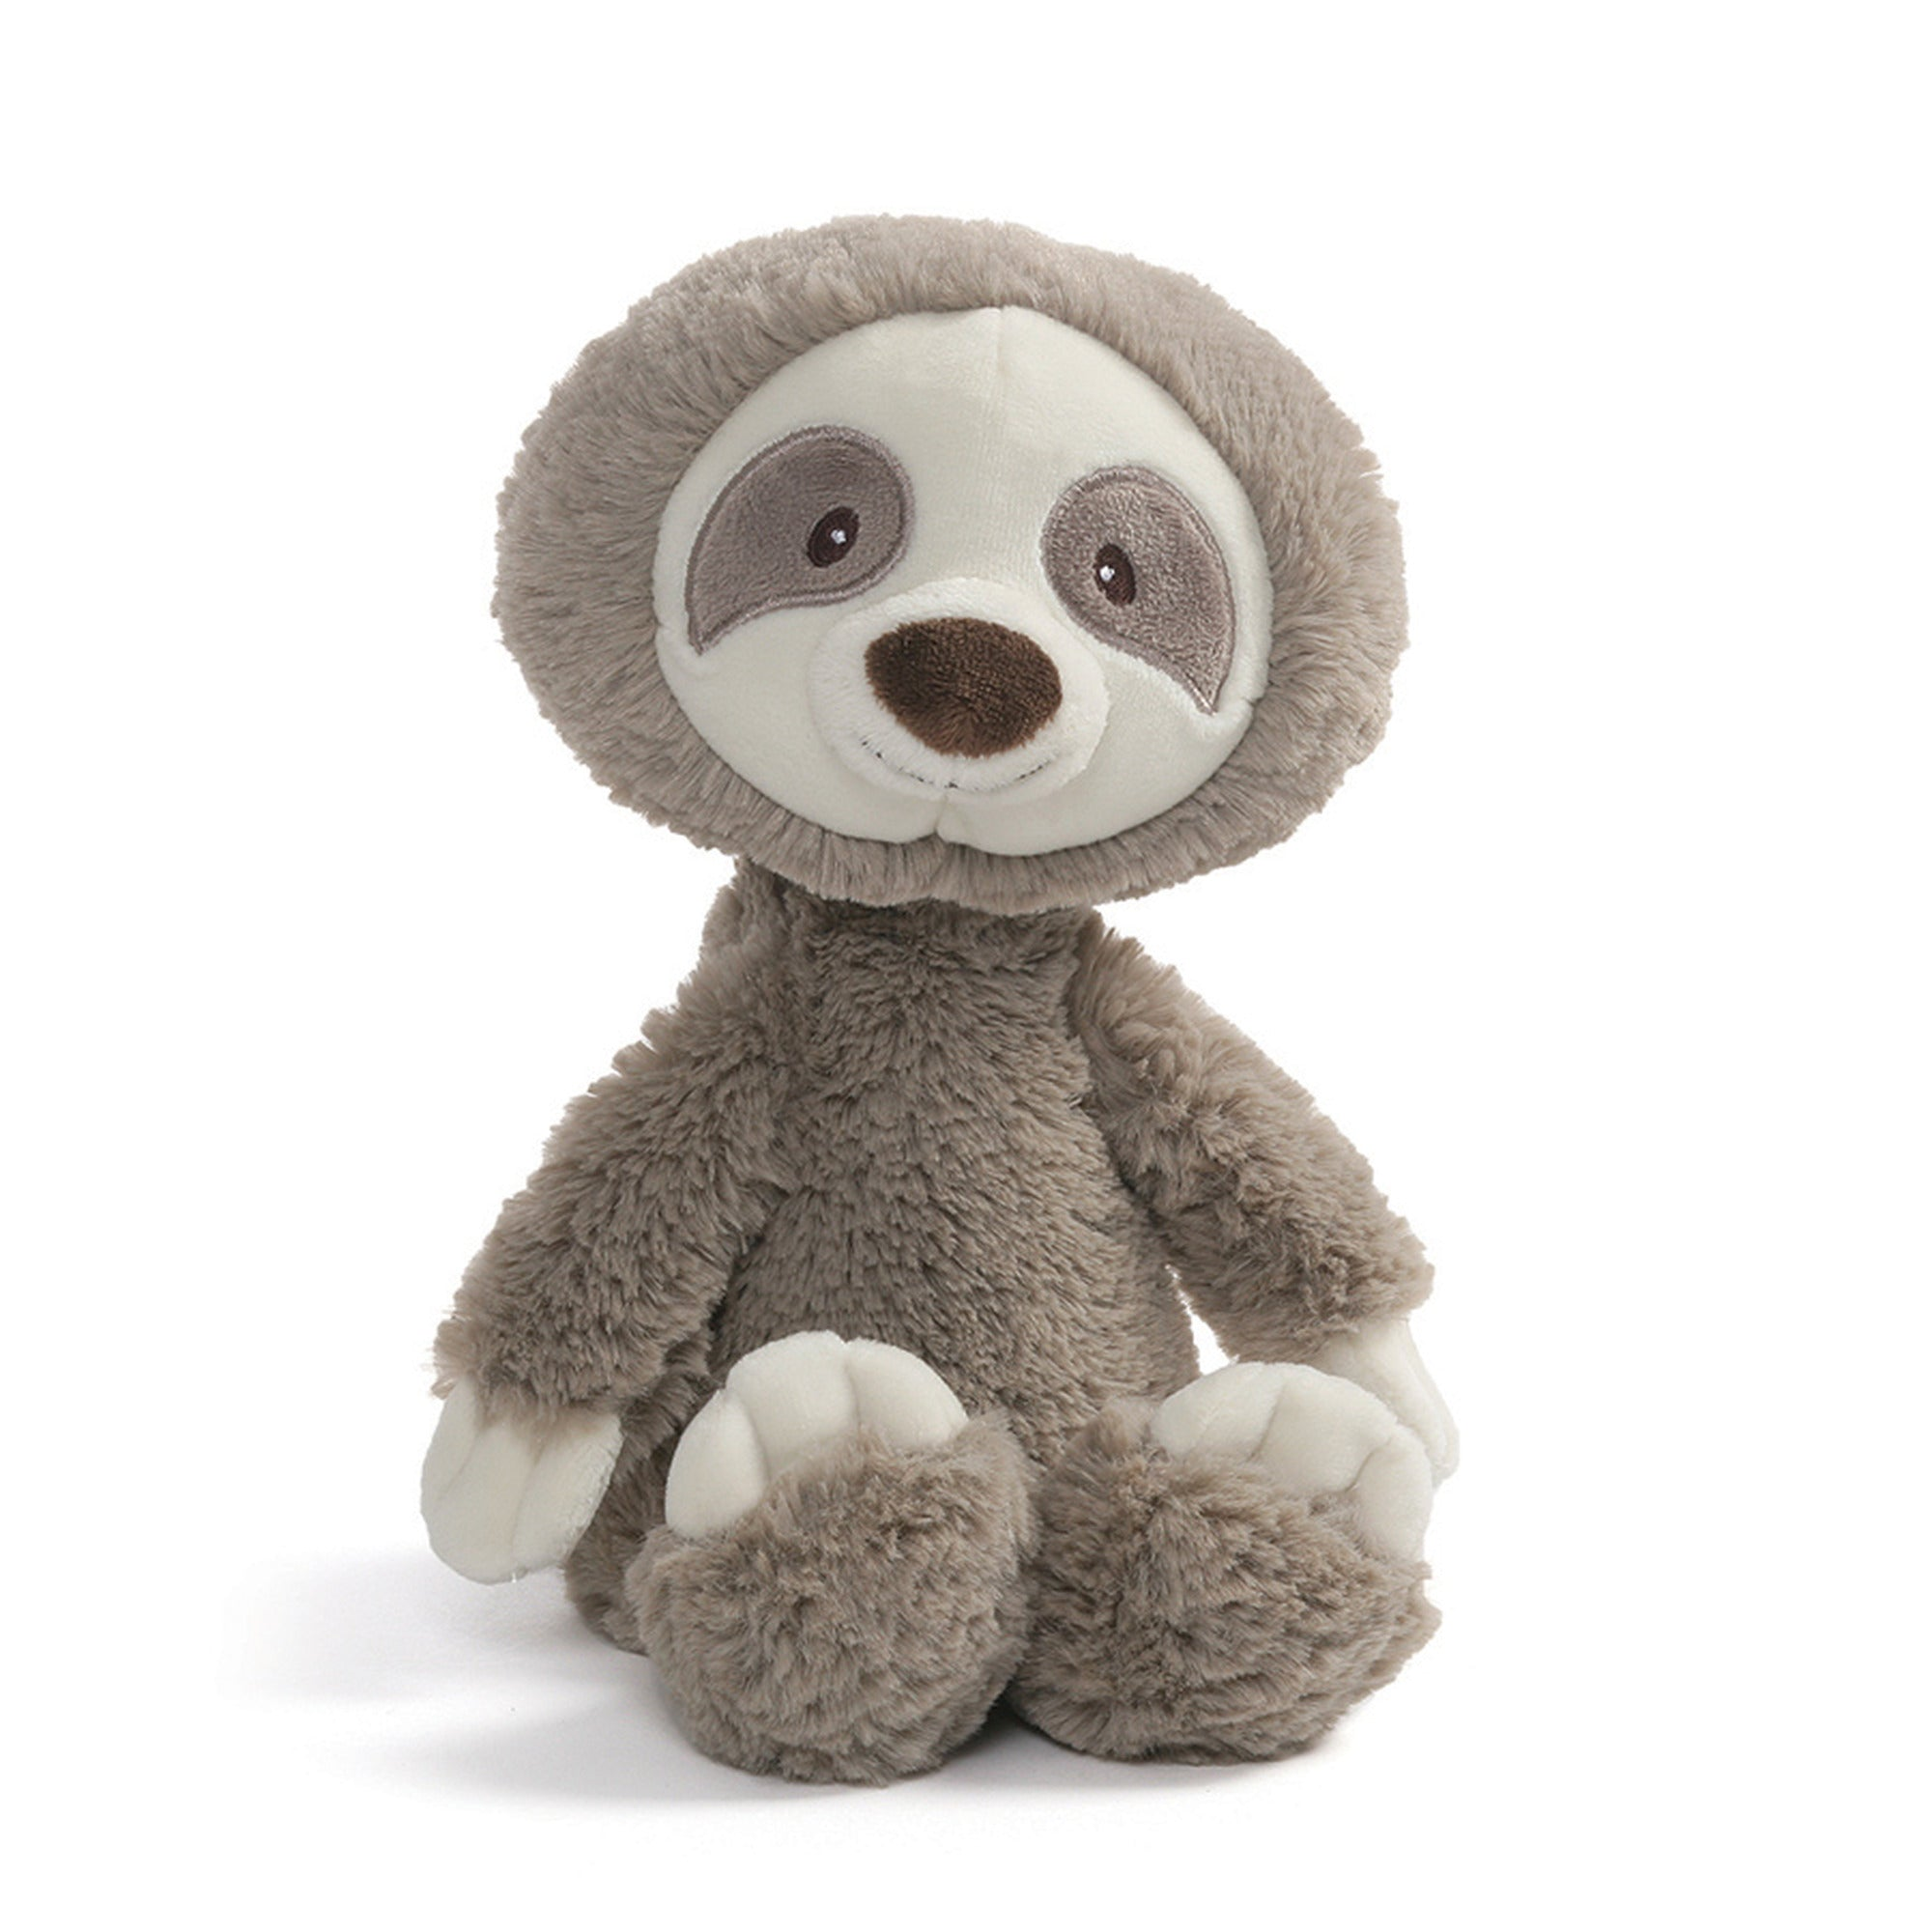 Baby Gund - Toothpick Sloth - 12""